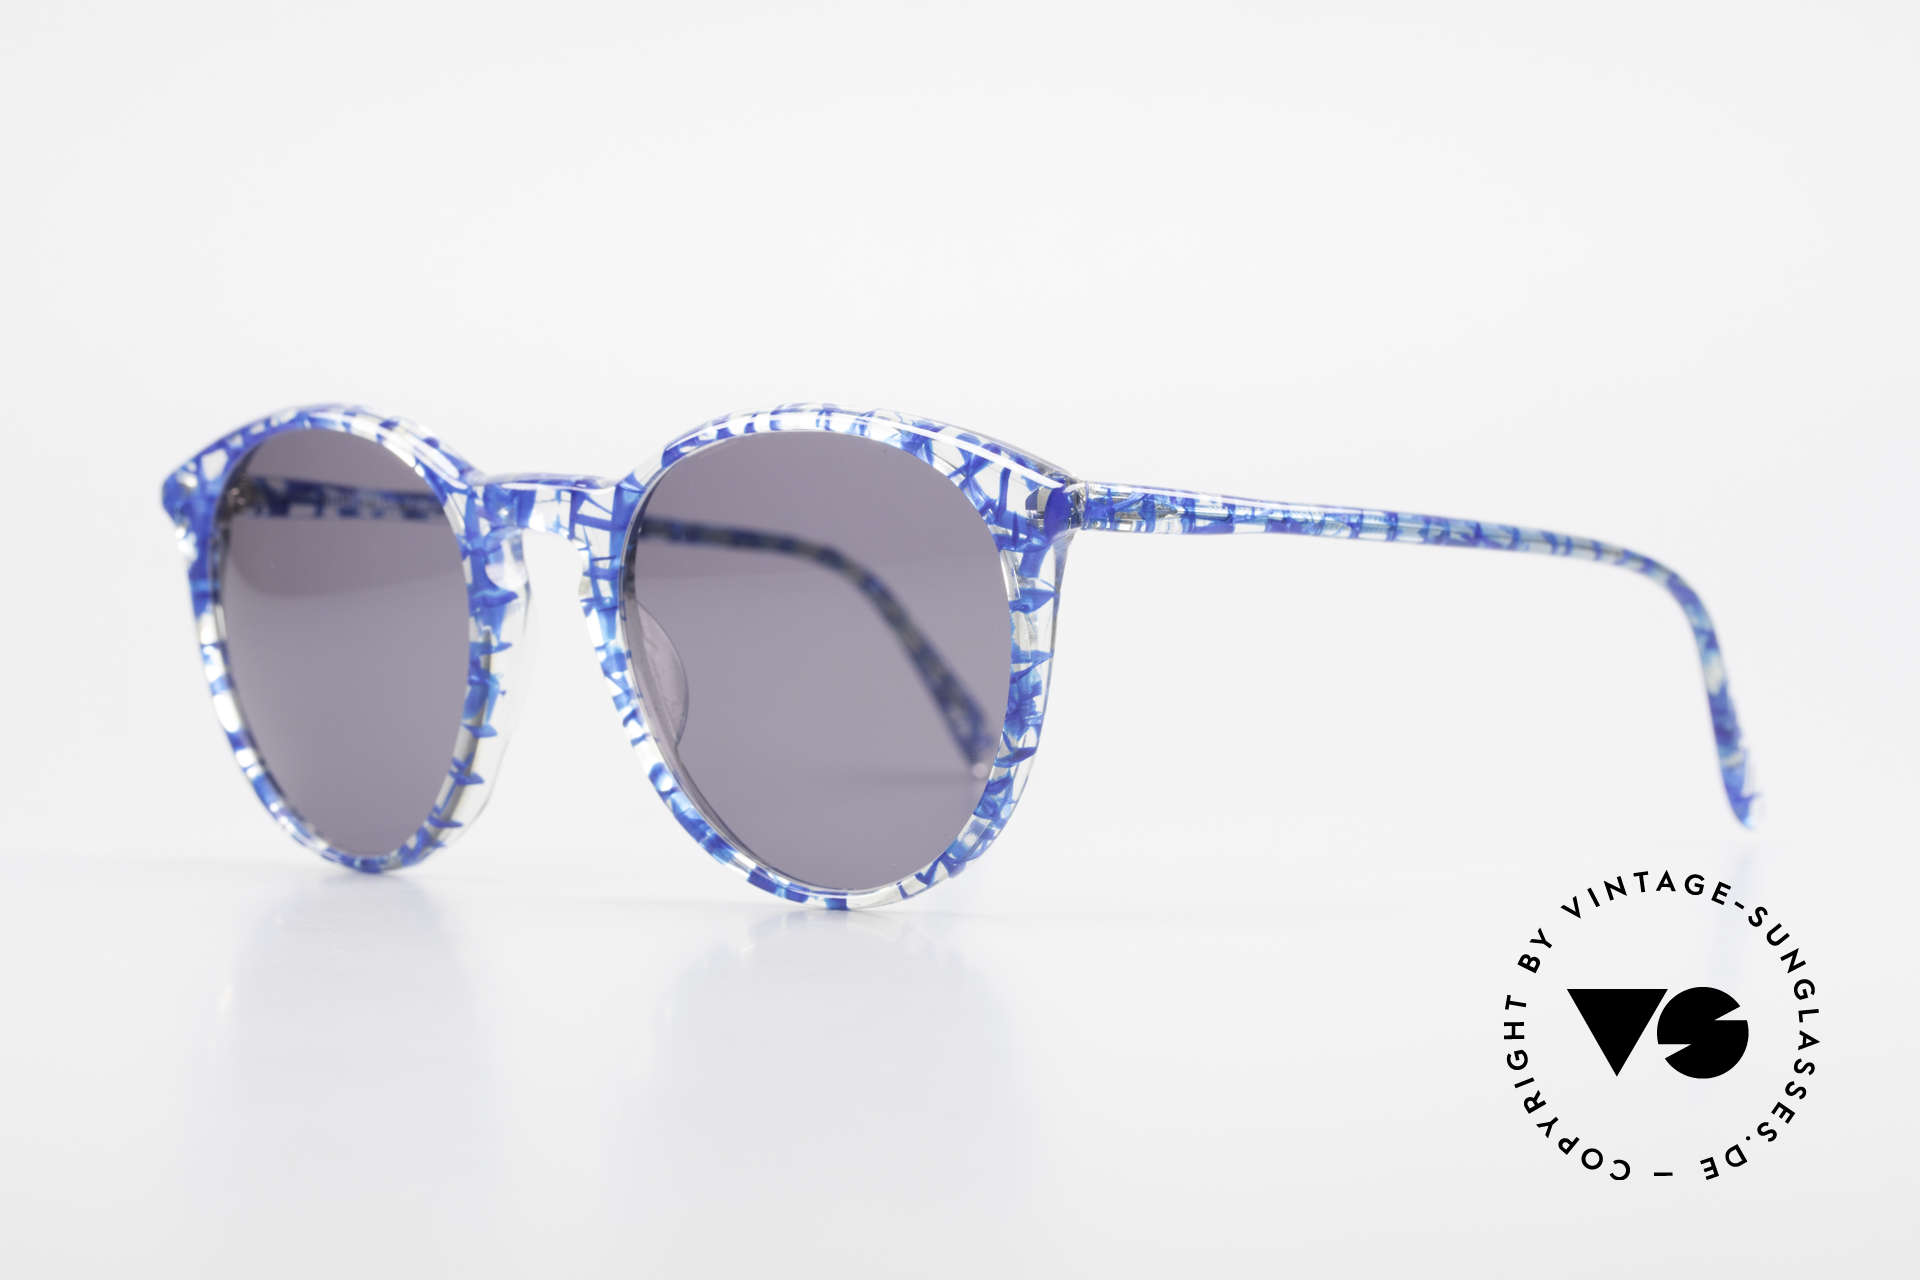 Alain Mikli 901 / 323 Panto Sunglasses Crystal Blue, terrific frame pattern looks crystal / blue netted, Made for Men and Women